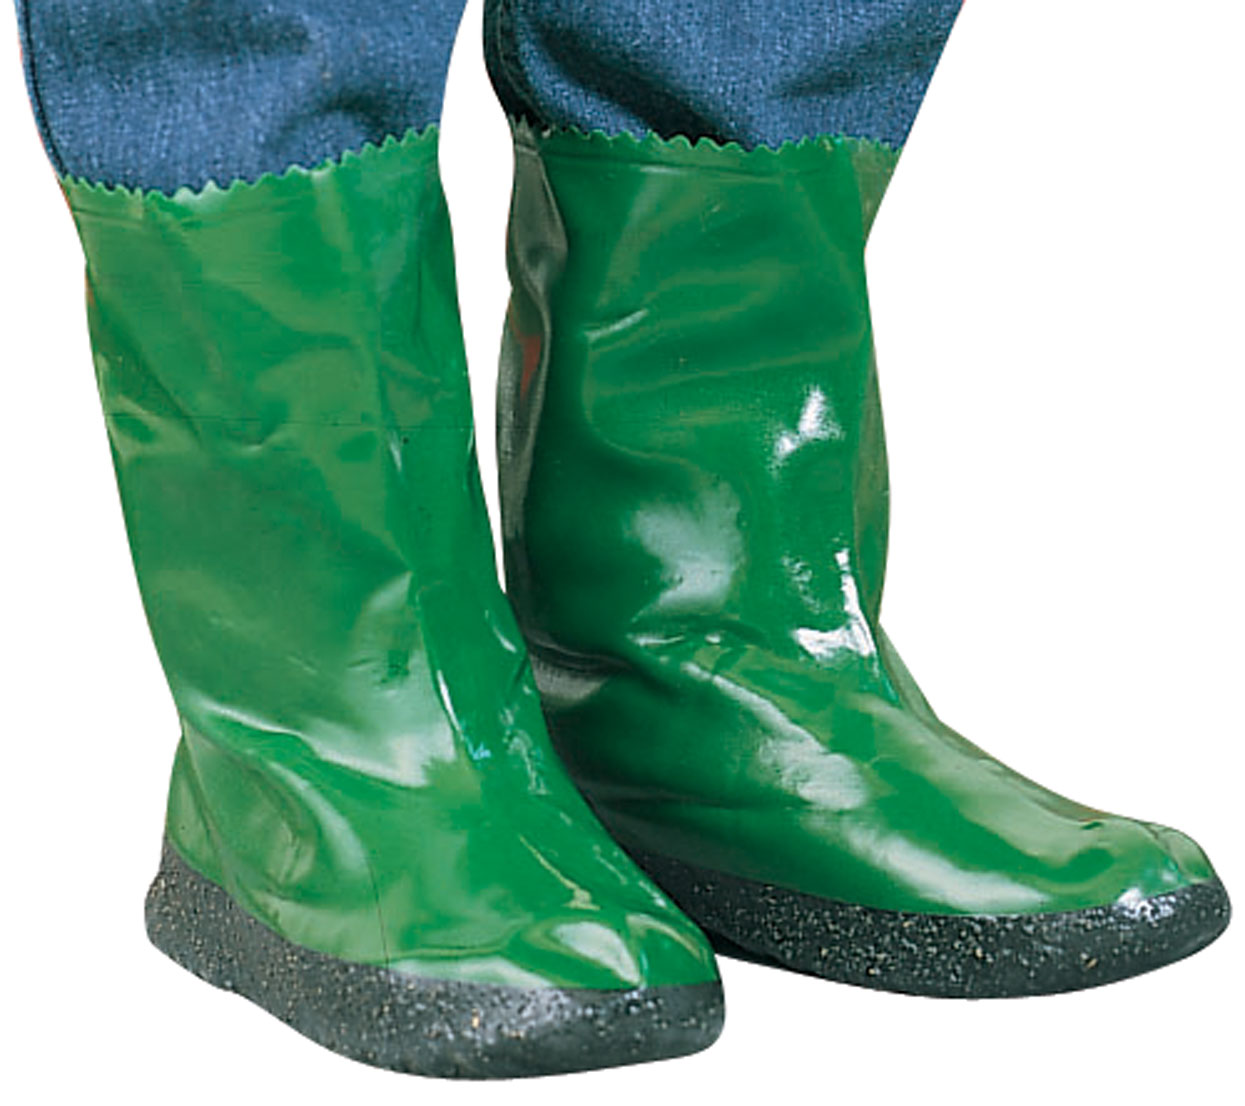 Garden Boots Tired of slippery, muddy garden boots? Slip on a pair of these garden boots with non-skid soles instead, and your feet will stay dry as you walk or work in the garden. Simply rinse rubber garden boots to clean. Washable, vinyl-treated cotton repels dirt and moisture. Small fits ladies (6-8), men's (4-6). Medium fits ladies' (9-10), men's (6-8). Large fits ladies' (10-12), men's (8-10). (Please note: these boots are not intended to be worn over shoes)